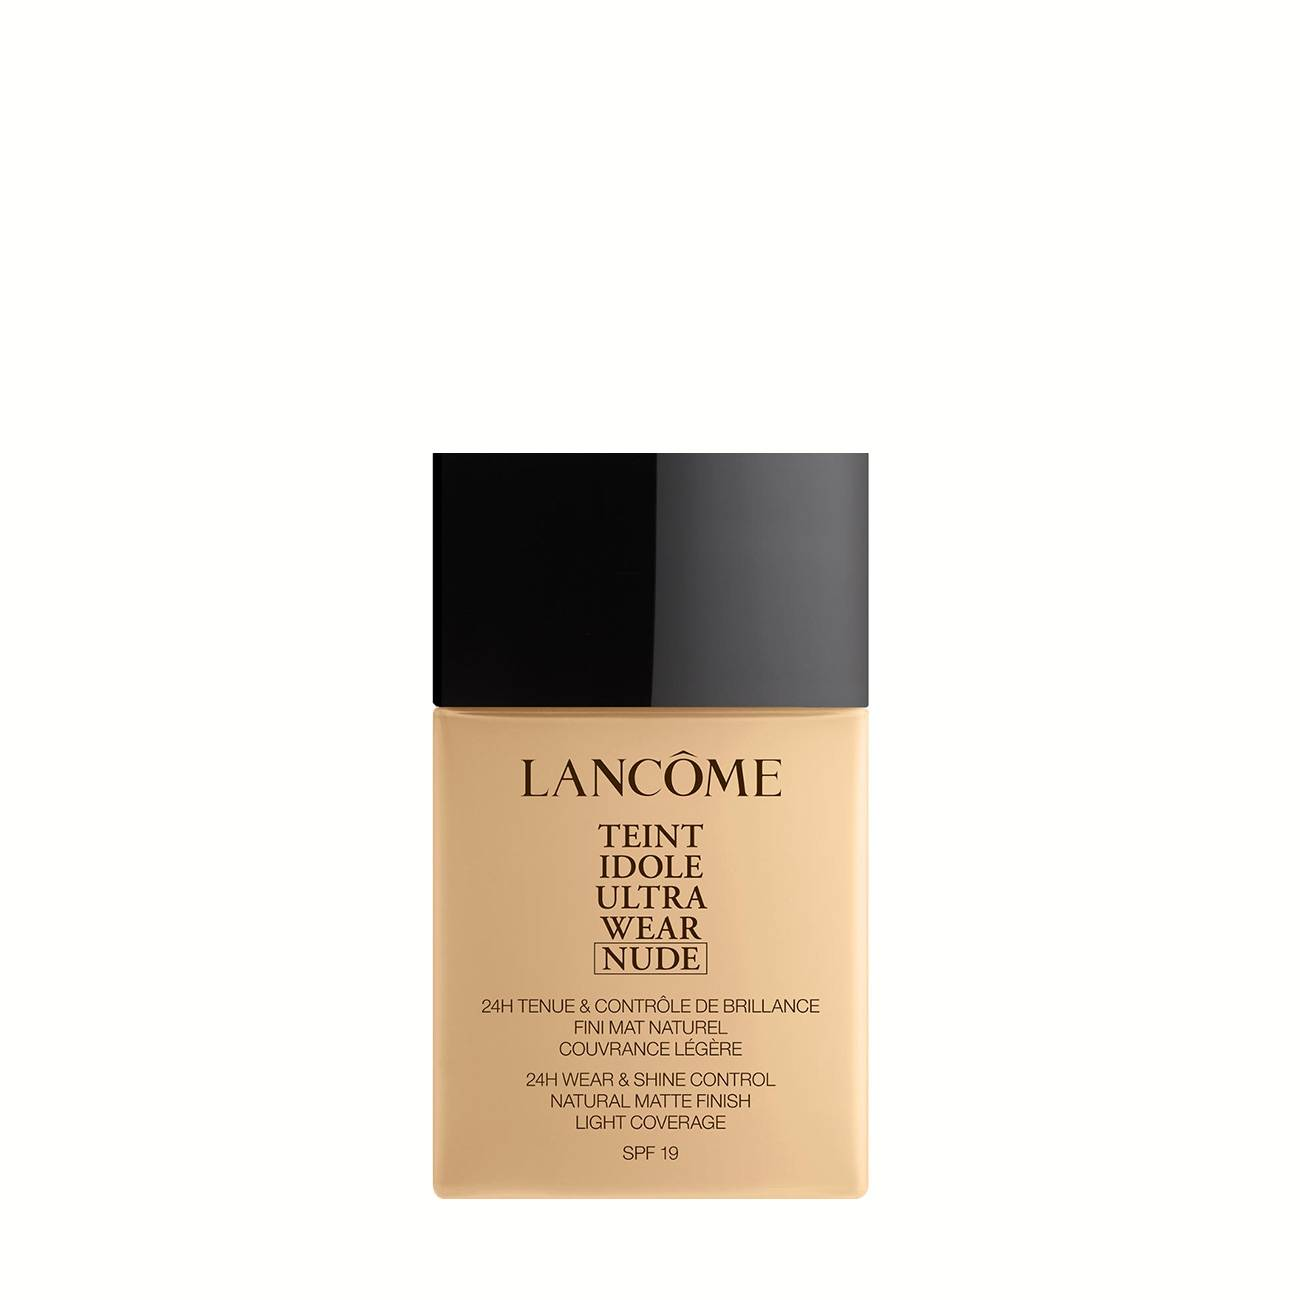 Teint Idole Ultra Wear Nude 010 40ml Lancôme imagine 2021 bestvalue.eu